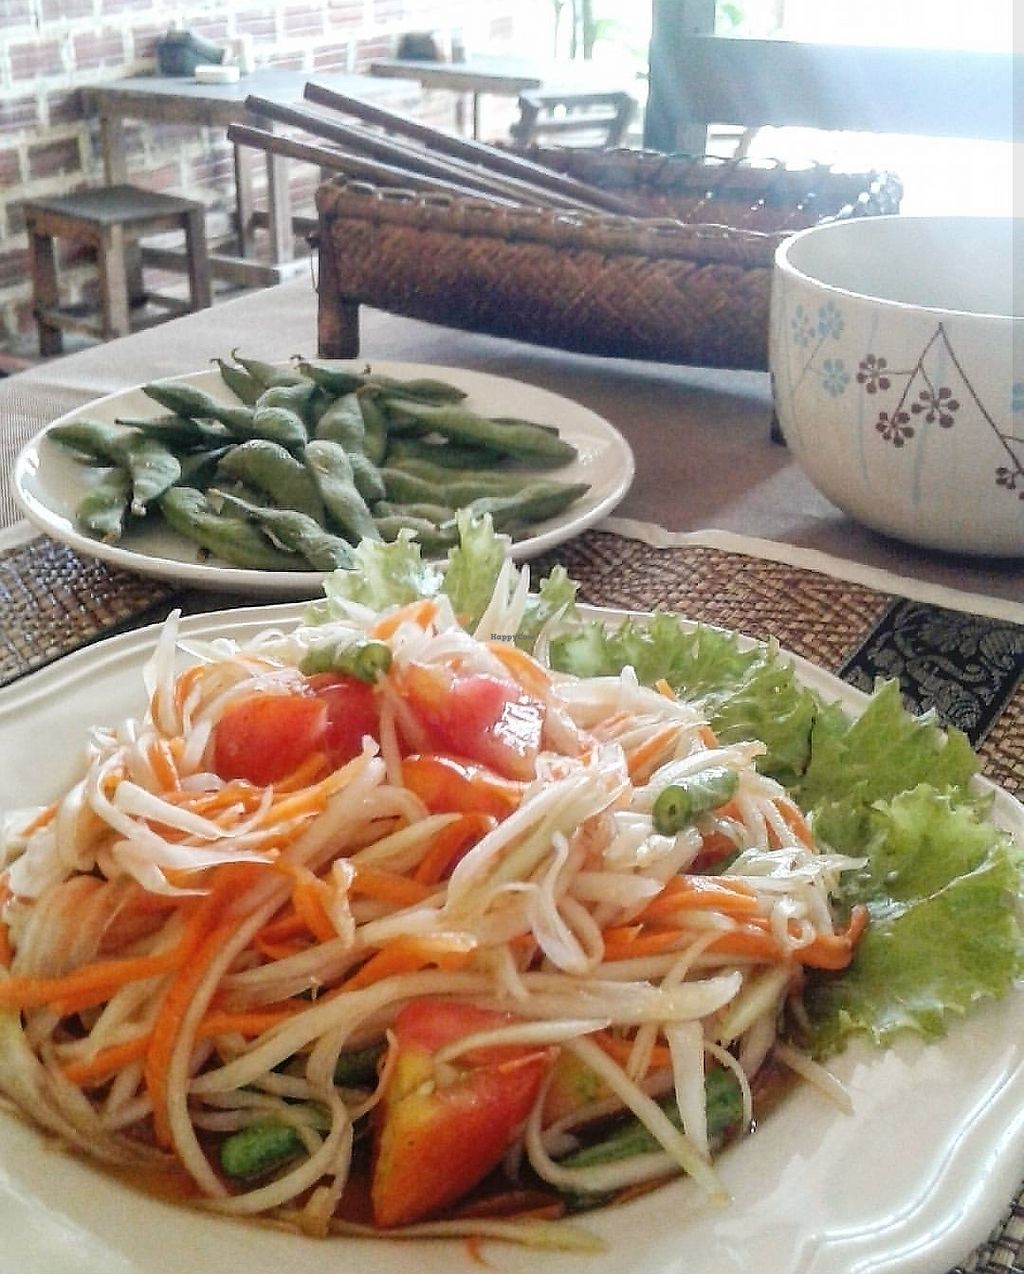 """Photo of Cafe Chai Dee  by <a href=""""/members/profile/VeganCrush"""">VeganCrush</a> <br/>Edamame and Papaya Salad <br/> December 16, 2017  - <a href='/contact/abuse/image/38424/335997'>Report</a>"""